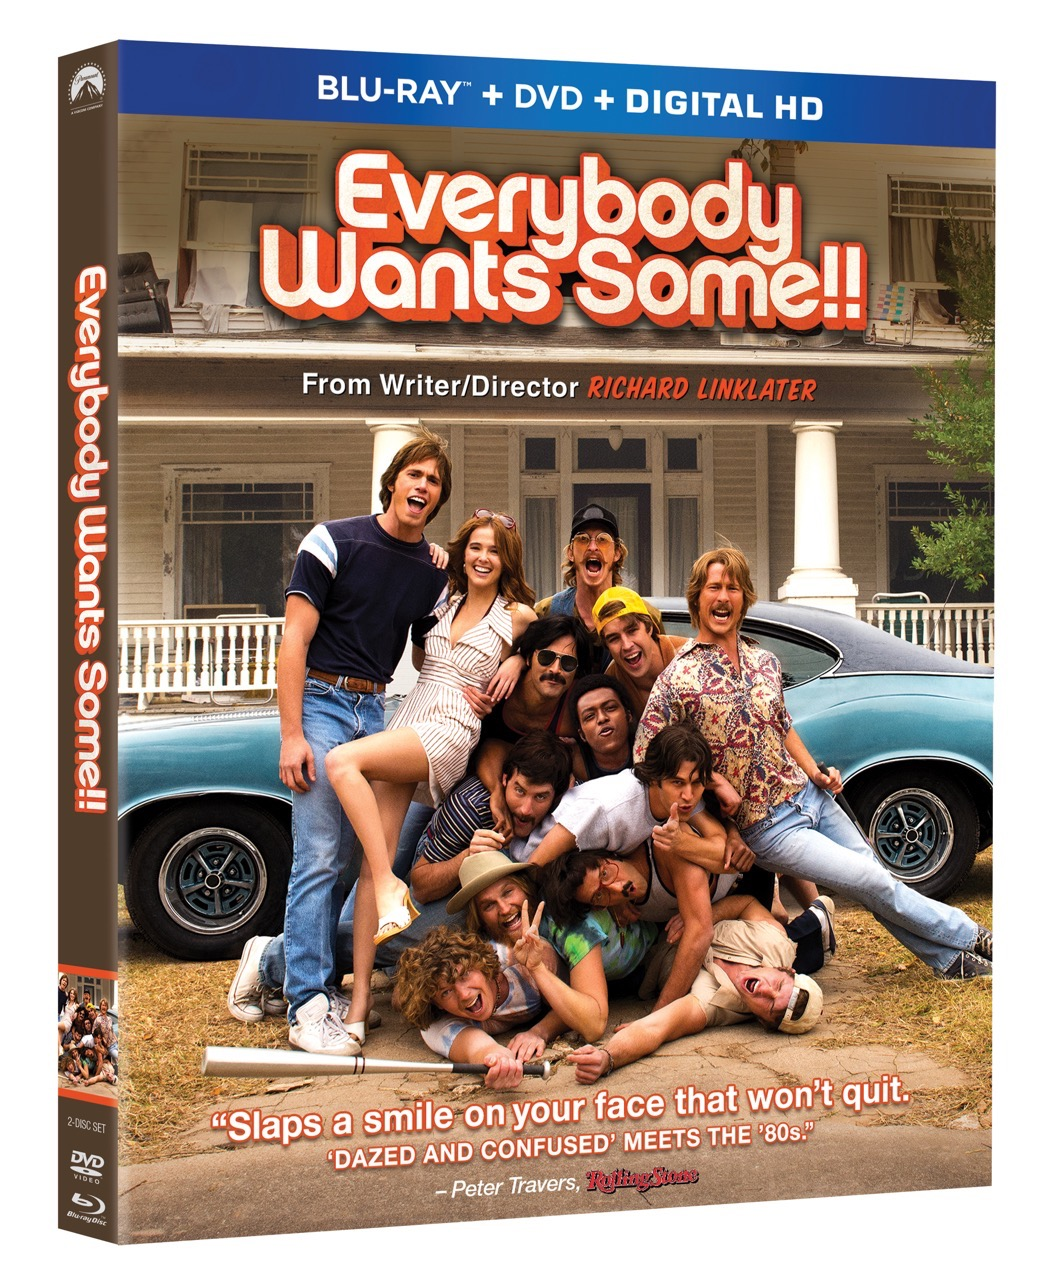 Everybody Wants Some box art b